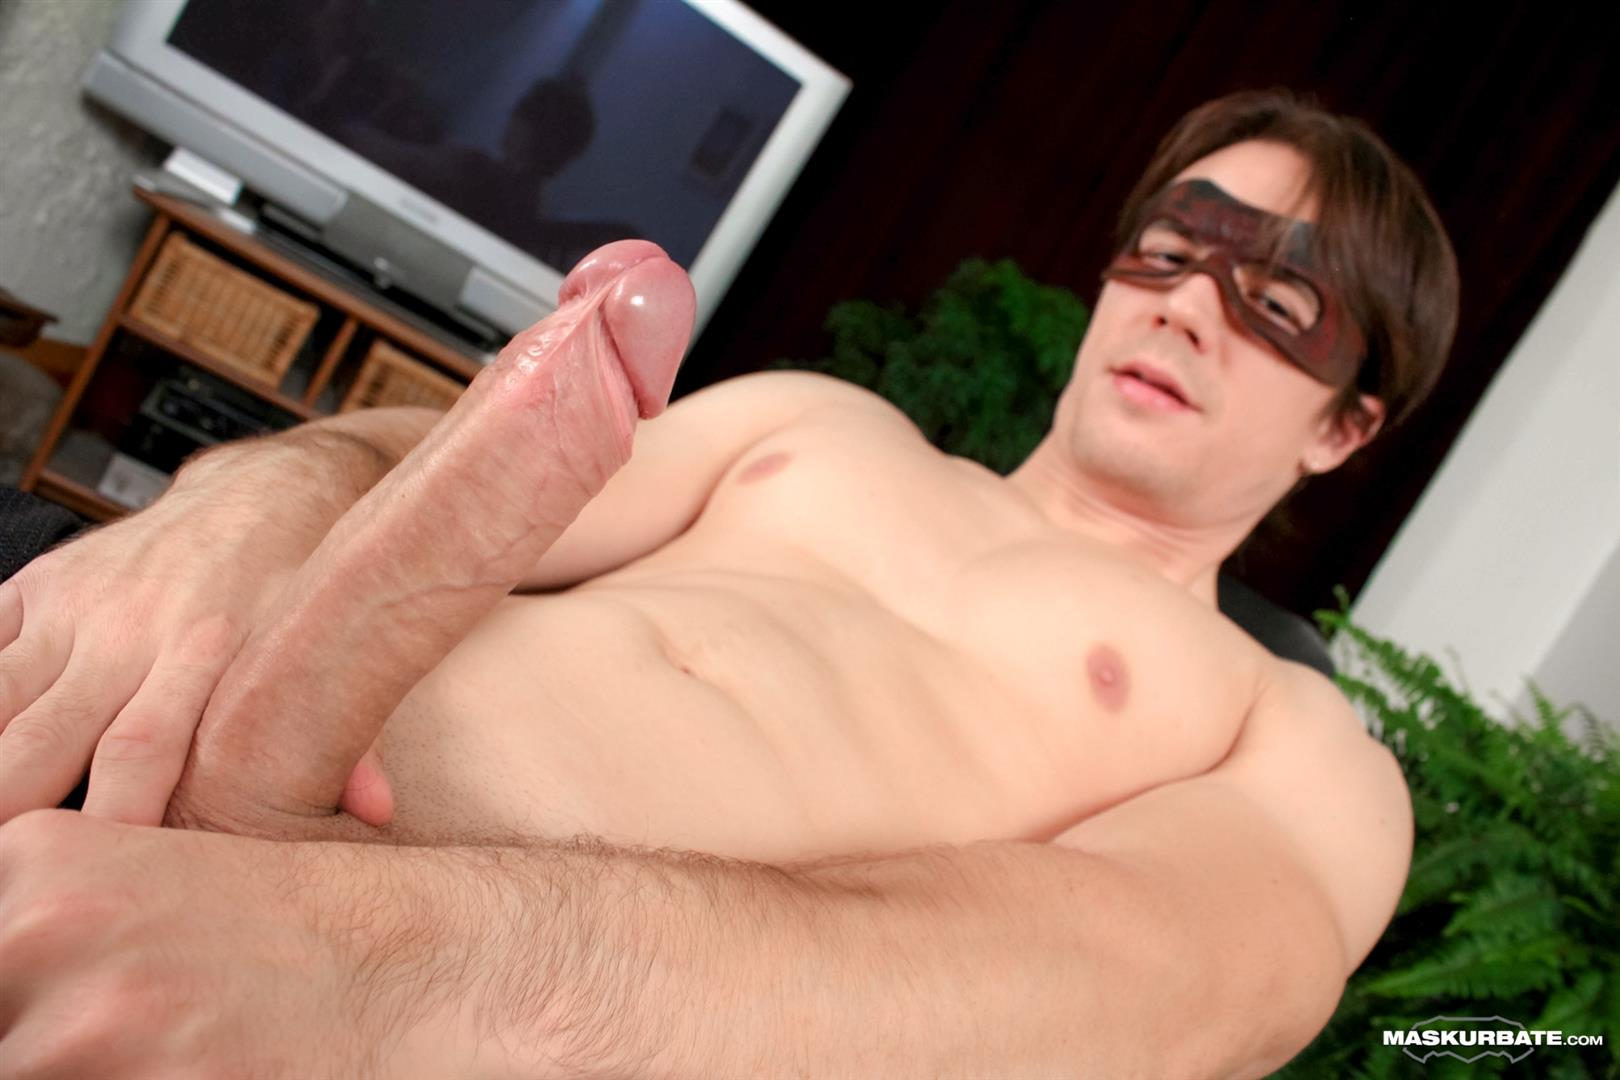 Maskurbate-Ricky-Big-Uncut-Cock-Jerk-Off-Anonymous-Amateur-Gay-Porn-11 Maskurbate Hunk Ricky Jerking Off His Huge Uncut Cock